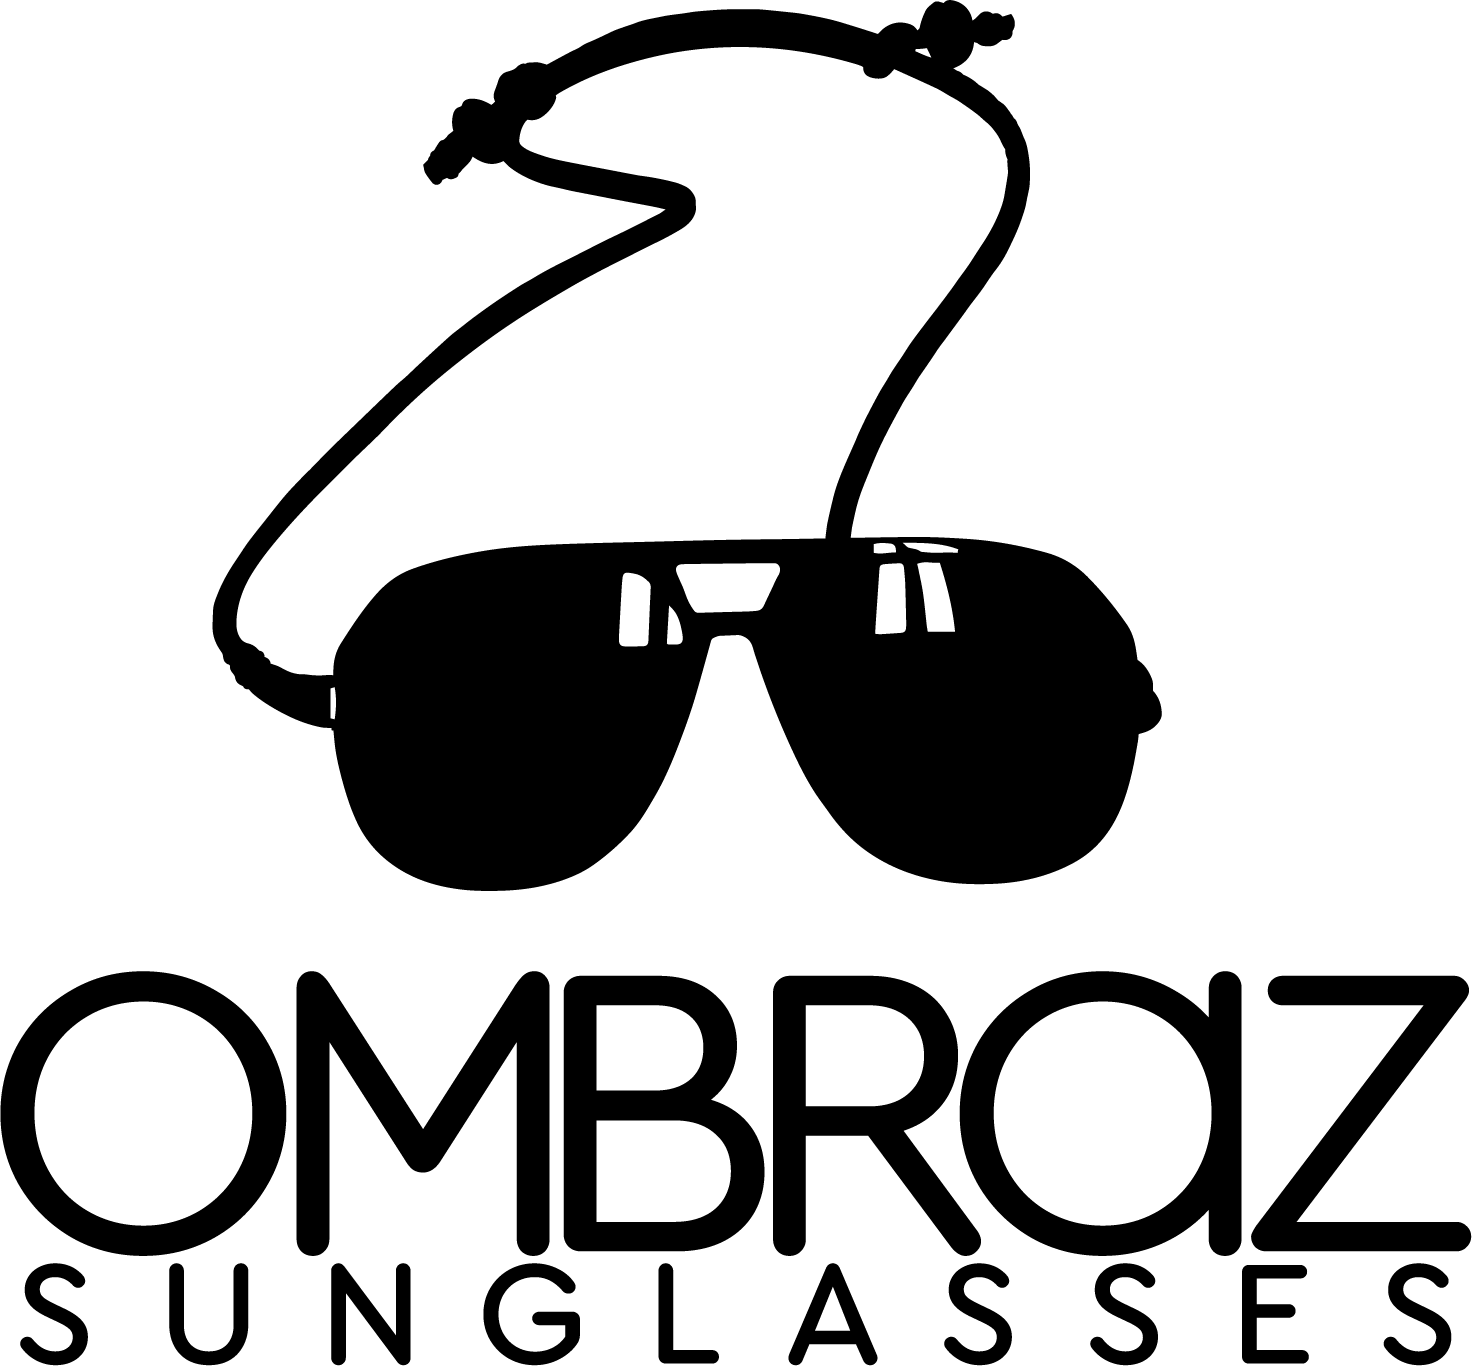 Ombraz Sunglasses Help Center home page